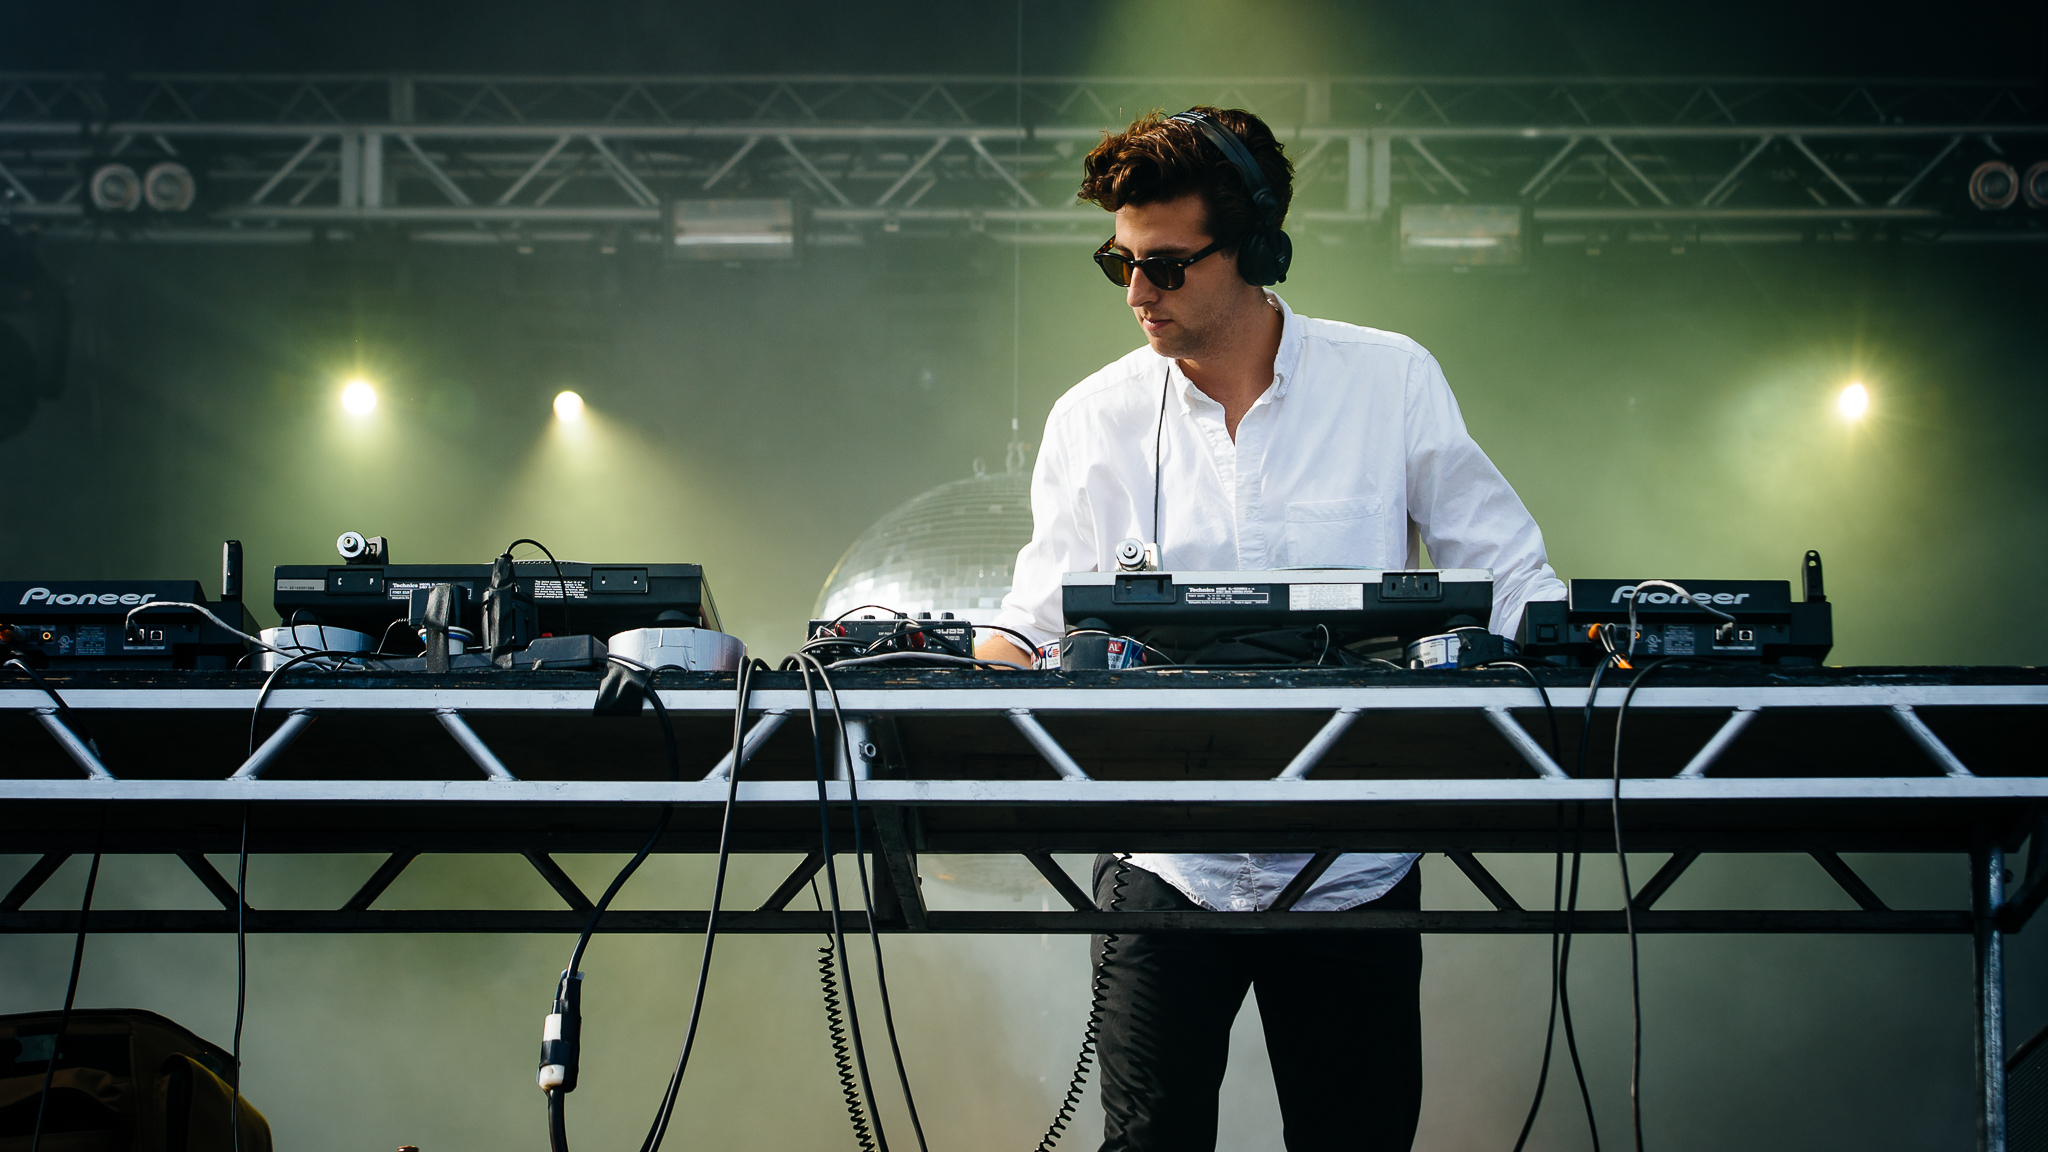 Jamie xx, Richie Hawtin, A$AP Rocky and more at Mana